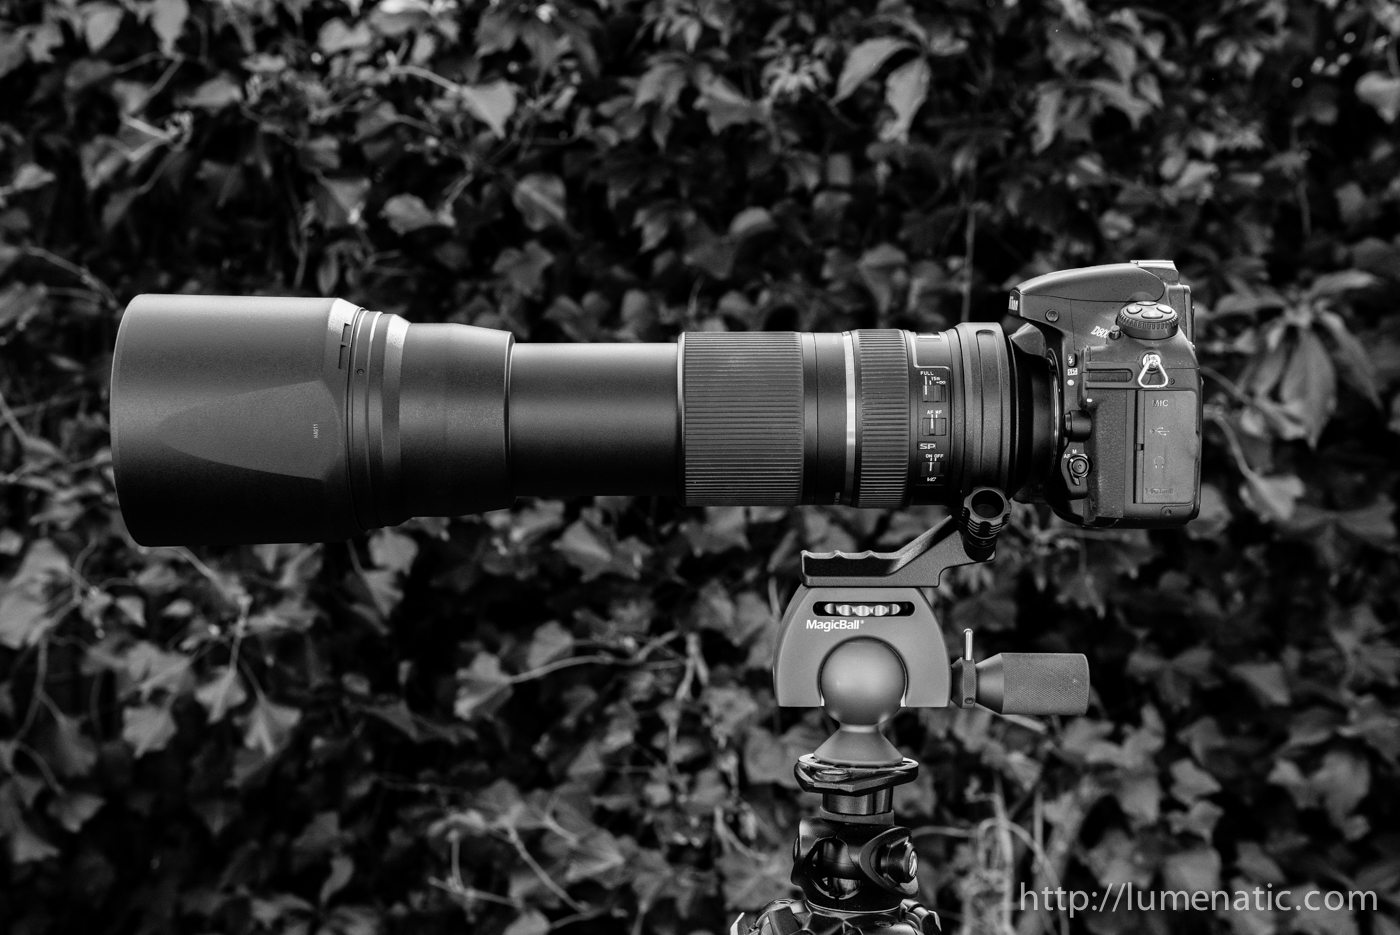 The Tamron 150-600 mm telezoom lens